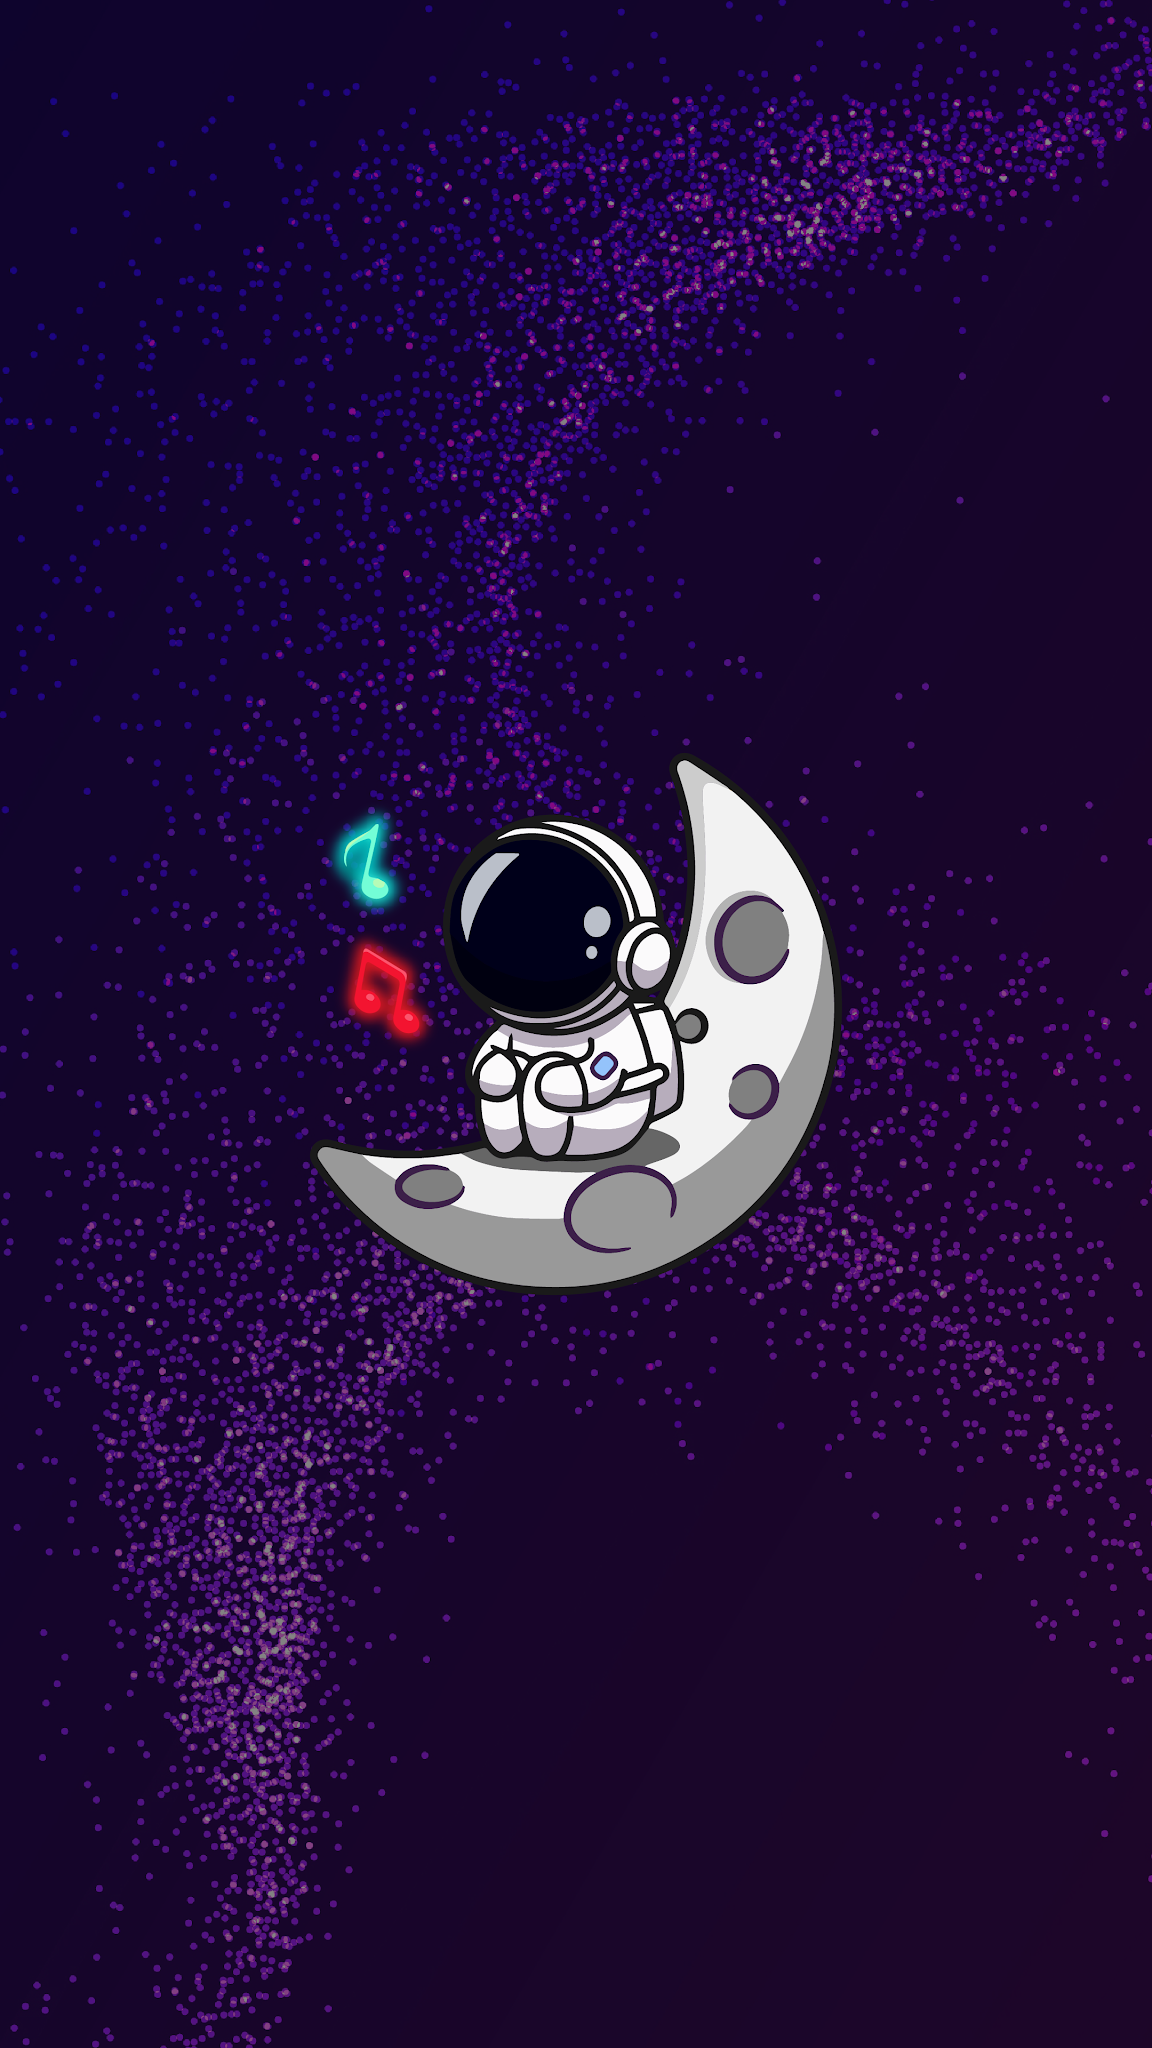 Phone Background 4k Cute Astronaut Heroscreen Cool Wallpapers